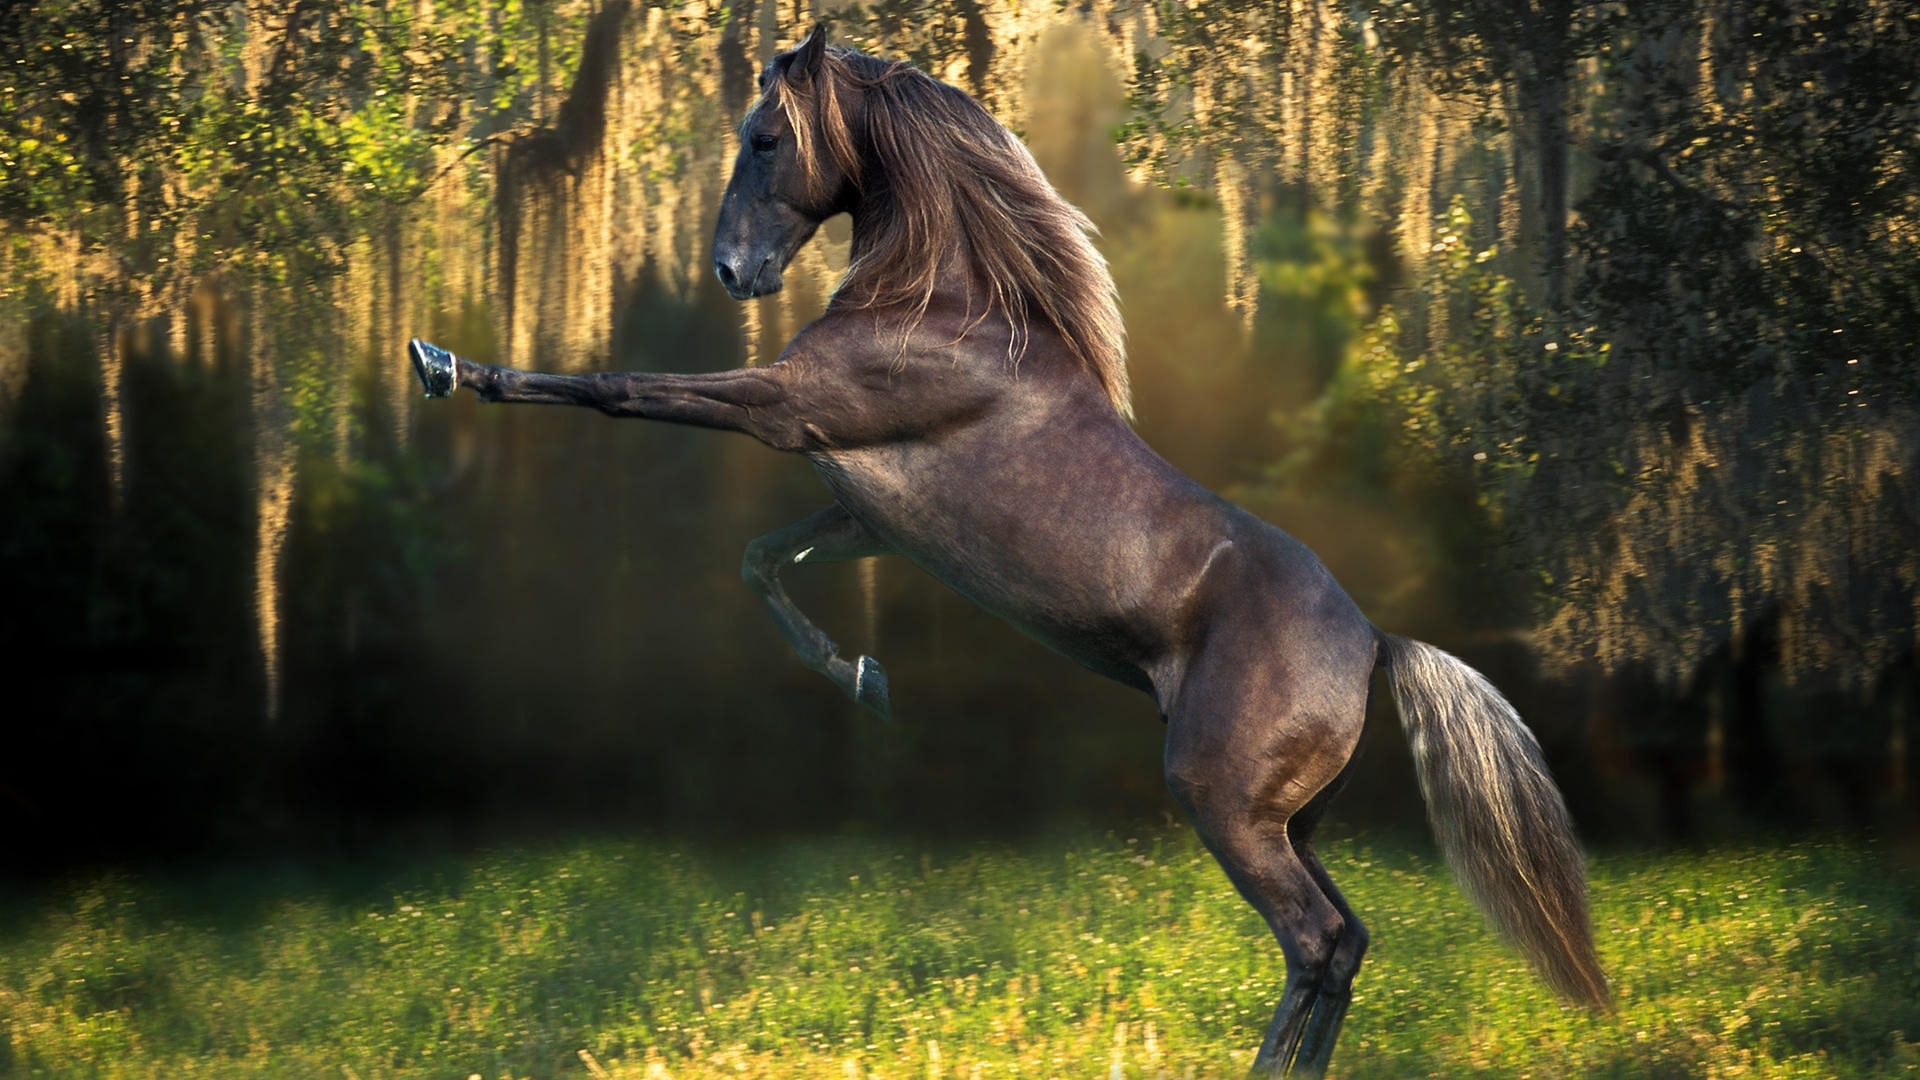 Horse hd photos related wallpapers horse hd pics altavistaventures Image collections